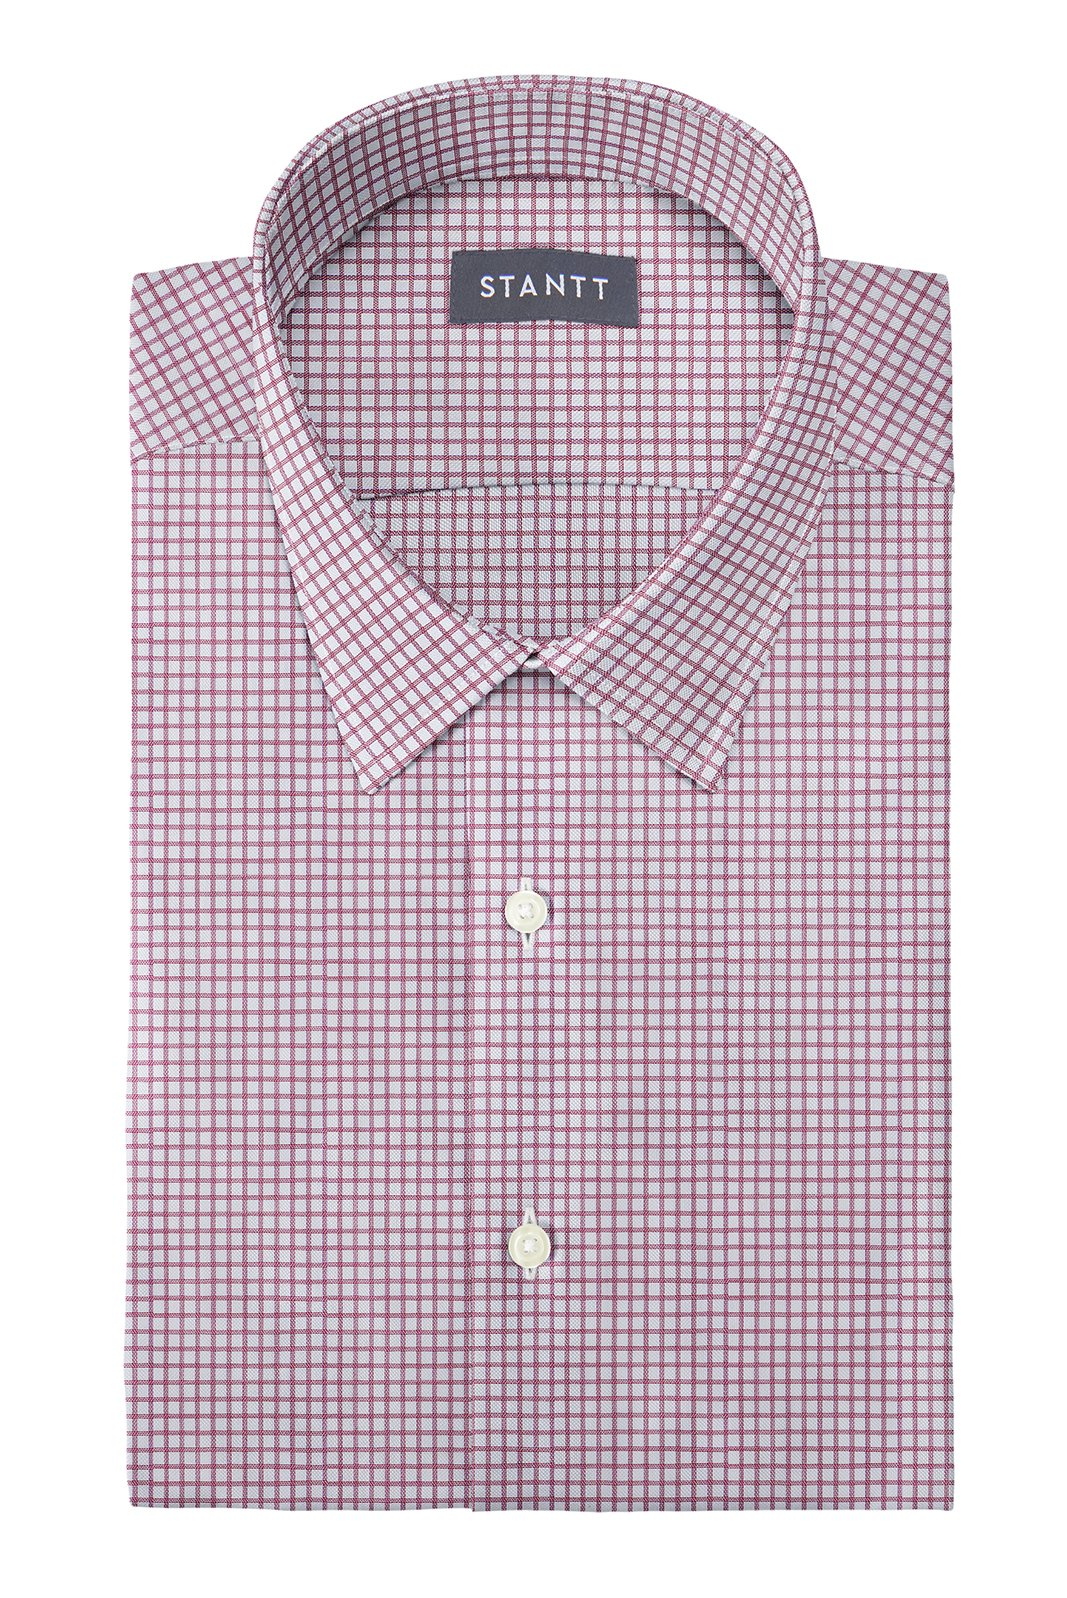 Wrinkle-Resistant Burgundy Dobby Check: Semi-Spread Collar, Barrel Cuff